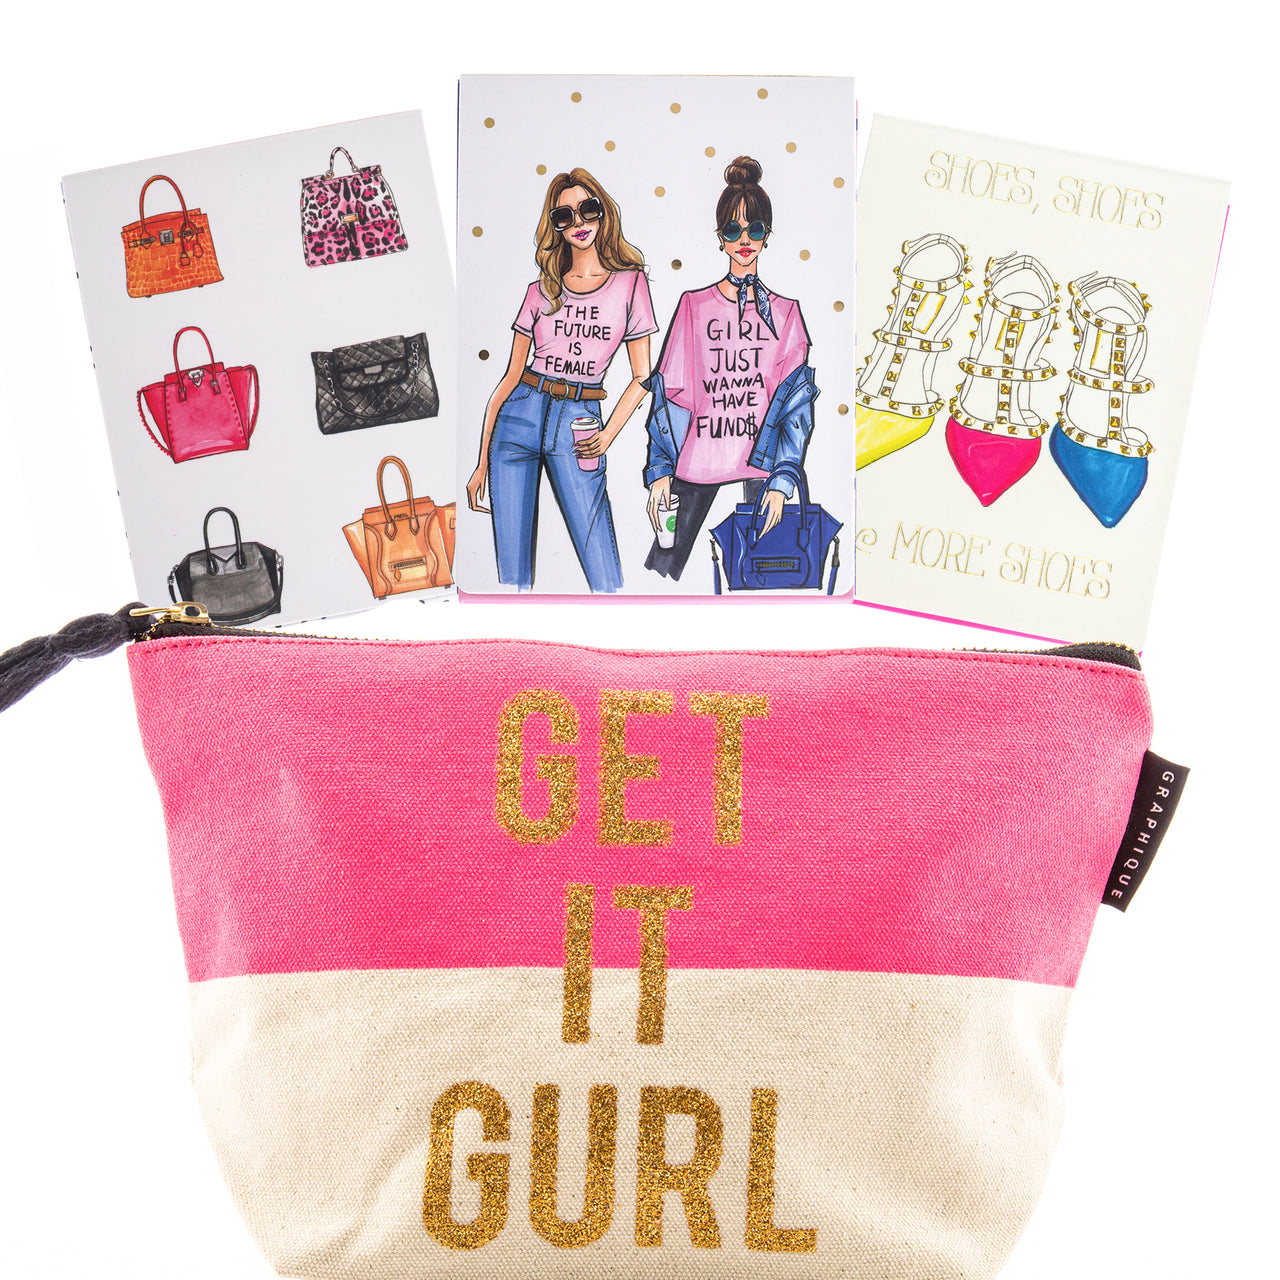 Graphique Fashion Girl Stationery Set ($32.00 Value)